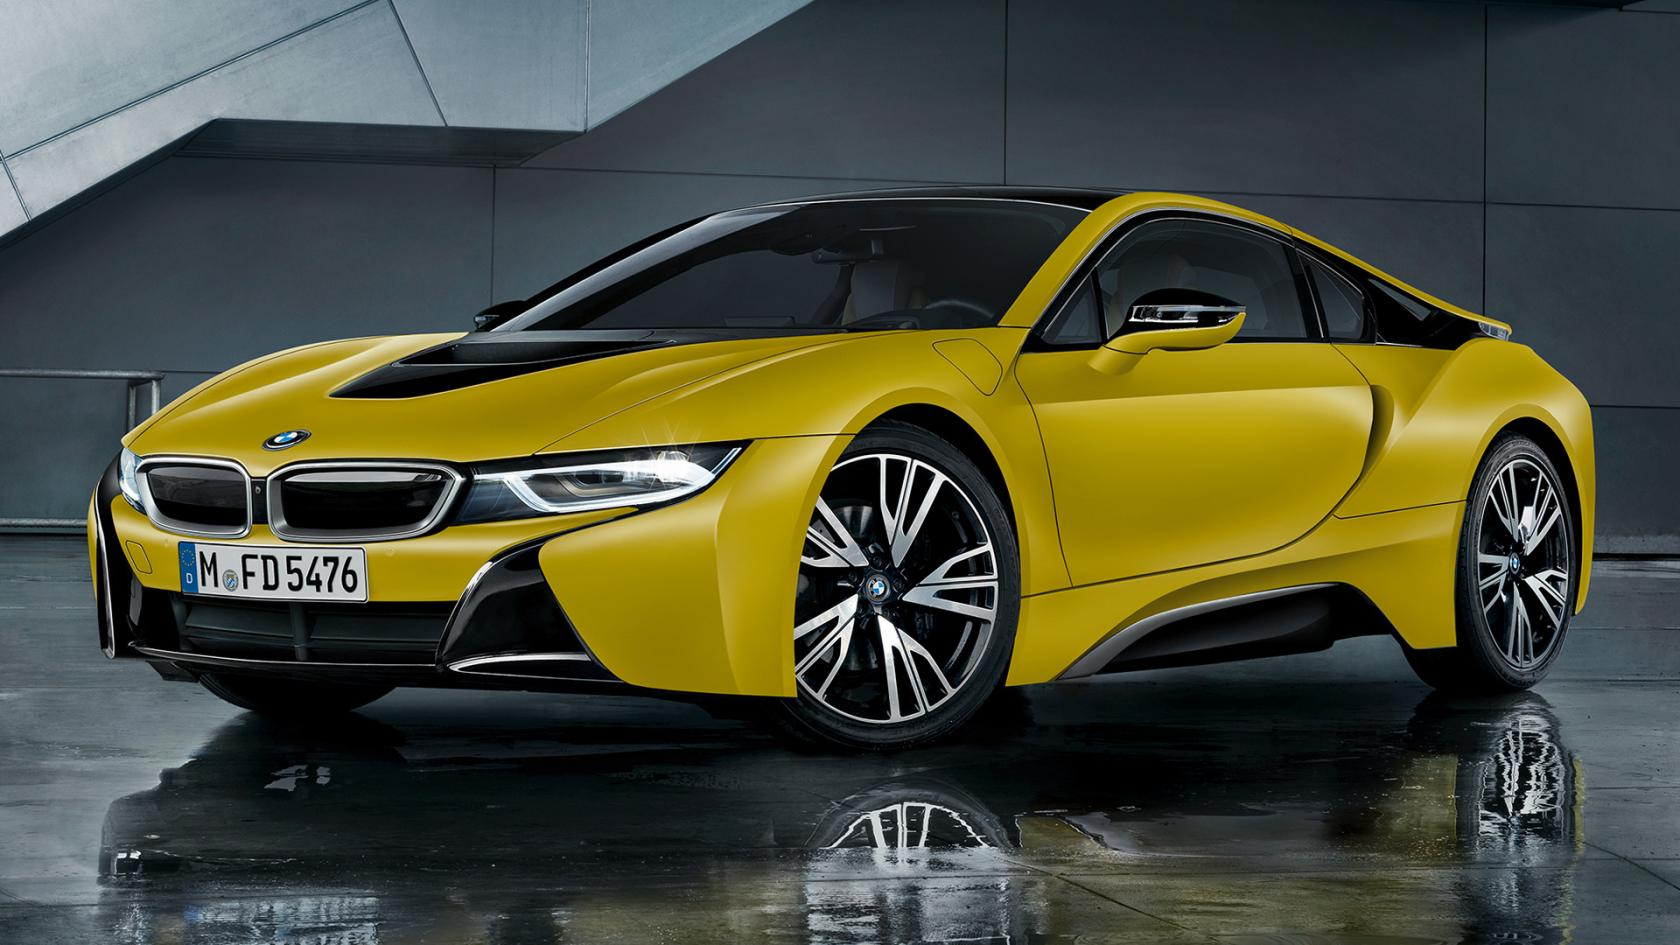 BMW-i8-Protonic-jaune.jpeg